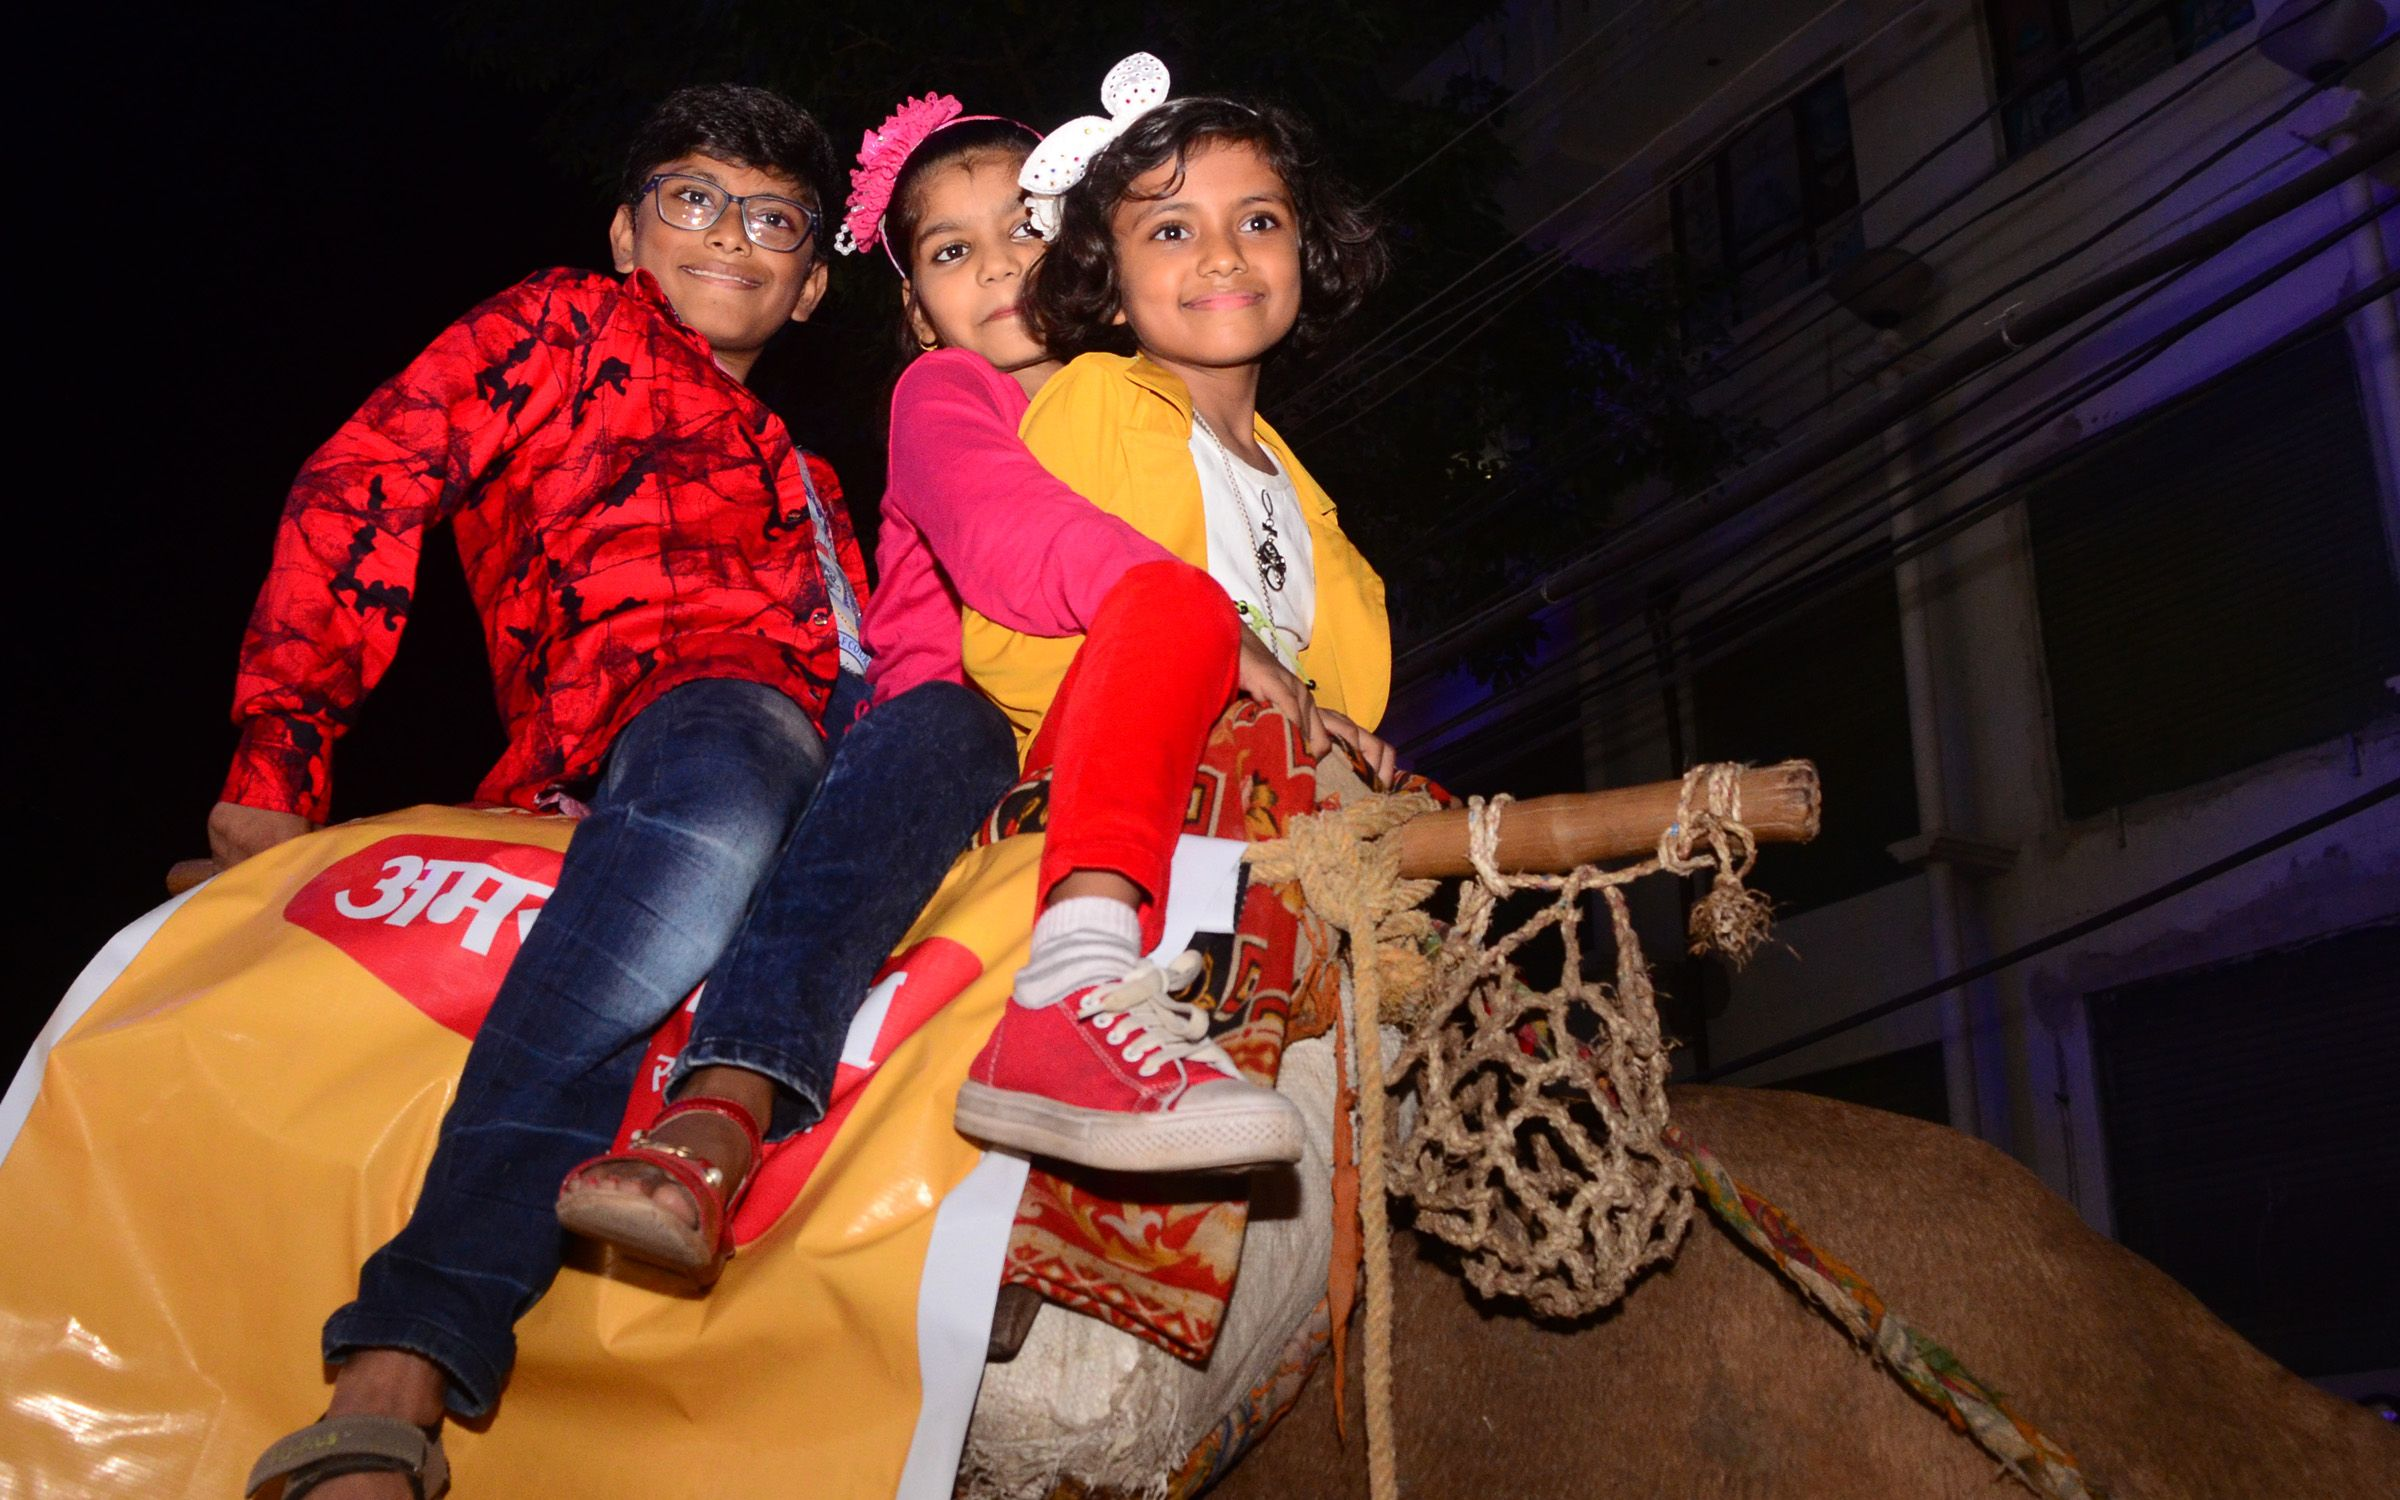 amarujala carnival :memories of every moment in the rain of happiness